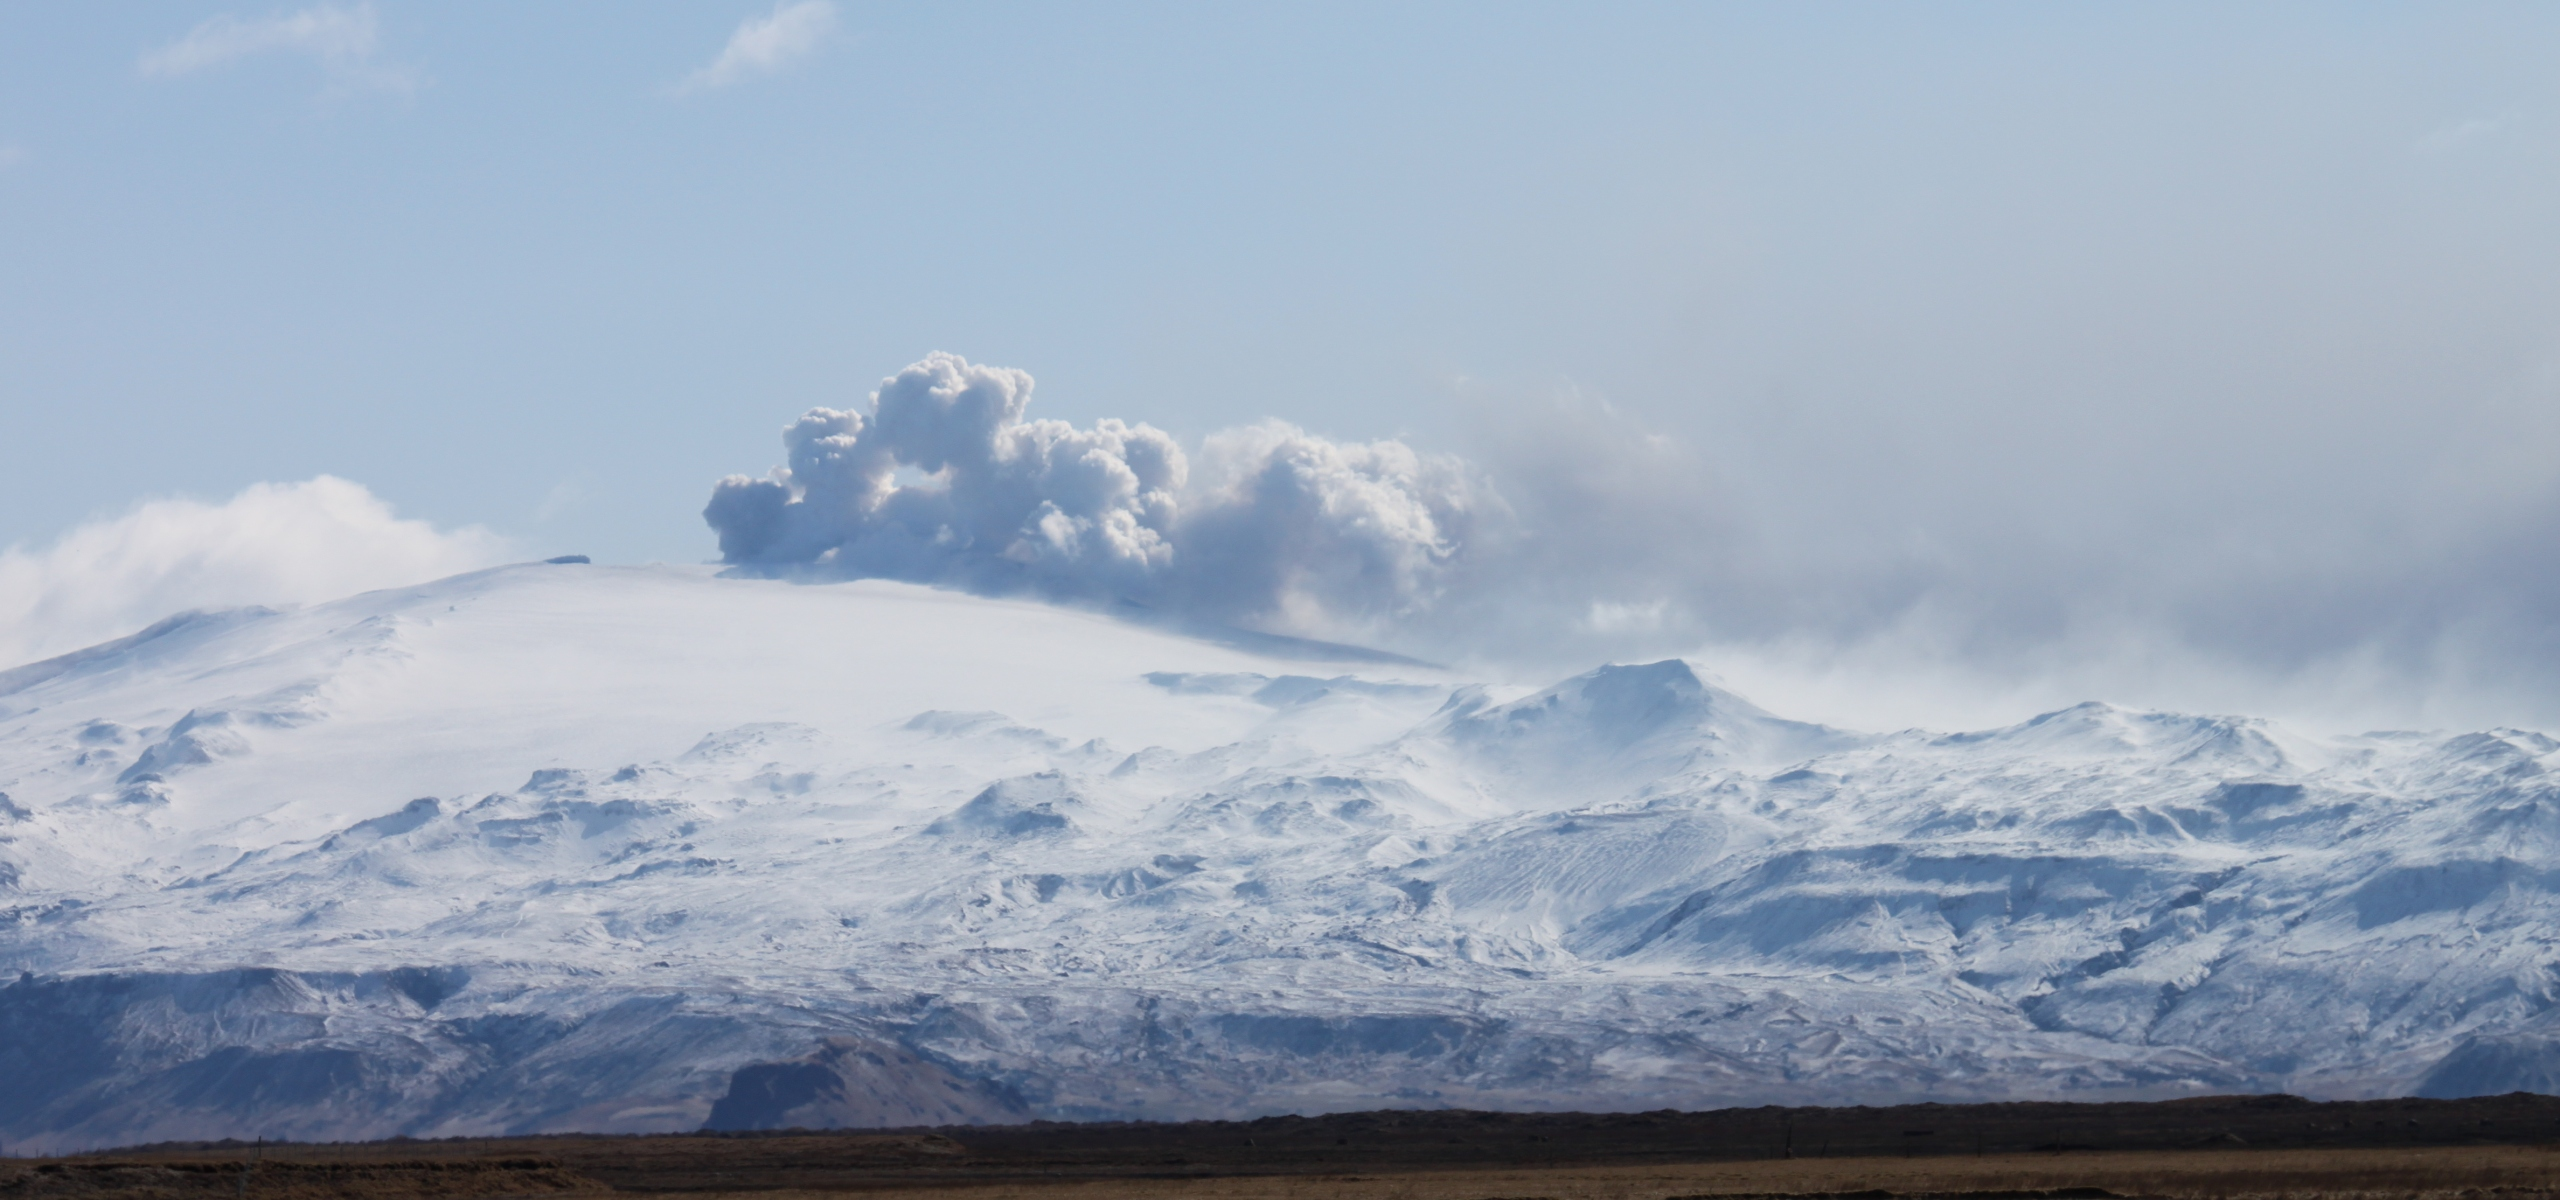 Smoke rising from Eyjfafjallajokull